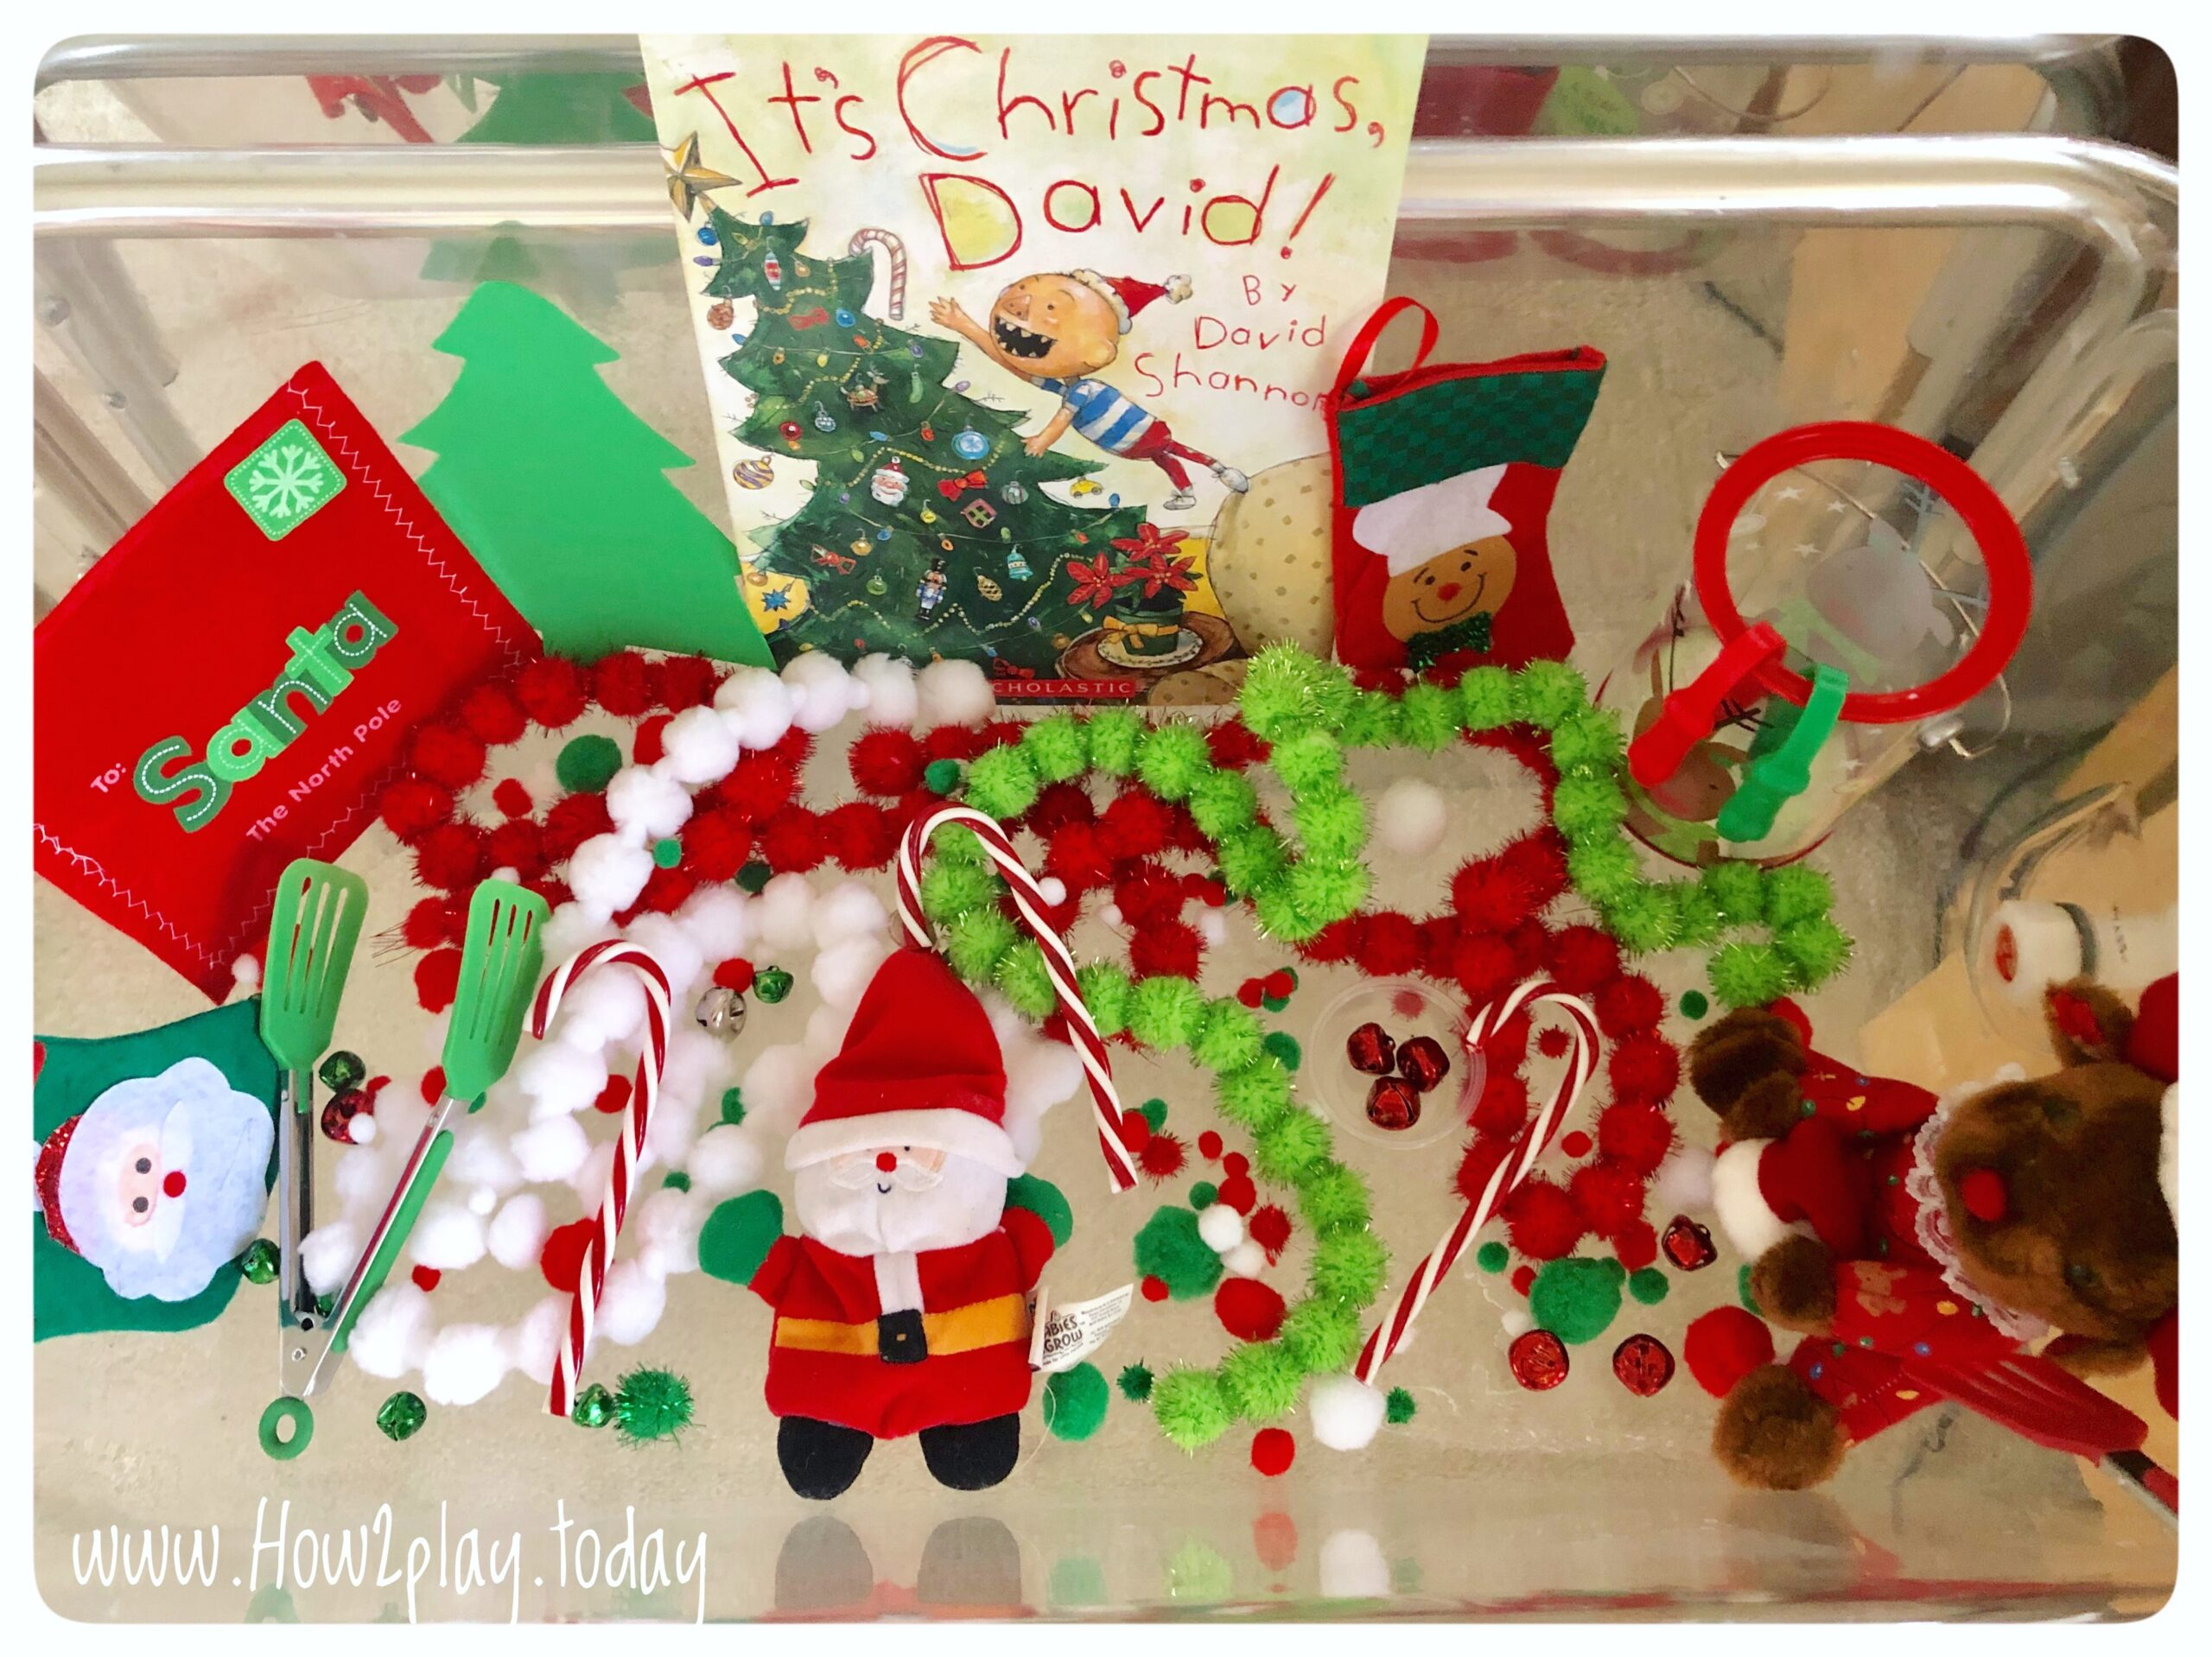 It's Christmas, David Sensory Bin: creating a sensory bin focused around a child's favorite book encourages continued play and love of reading